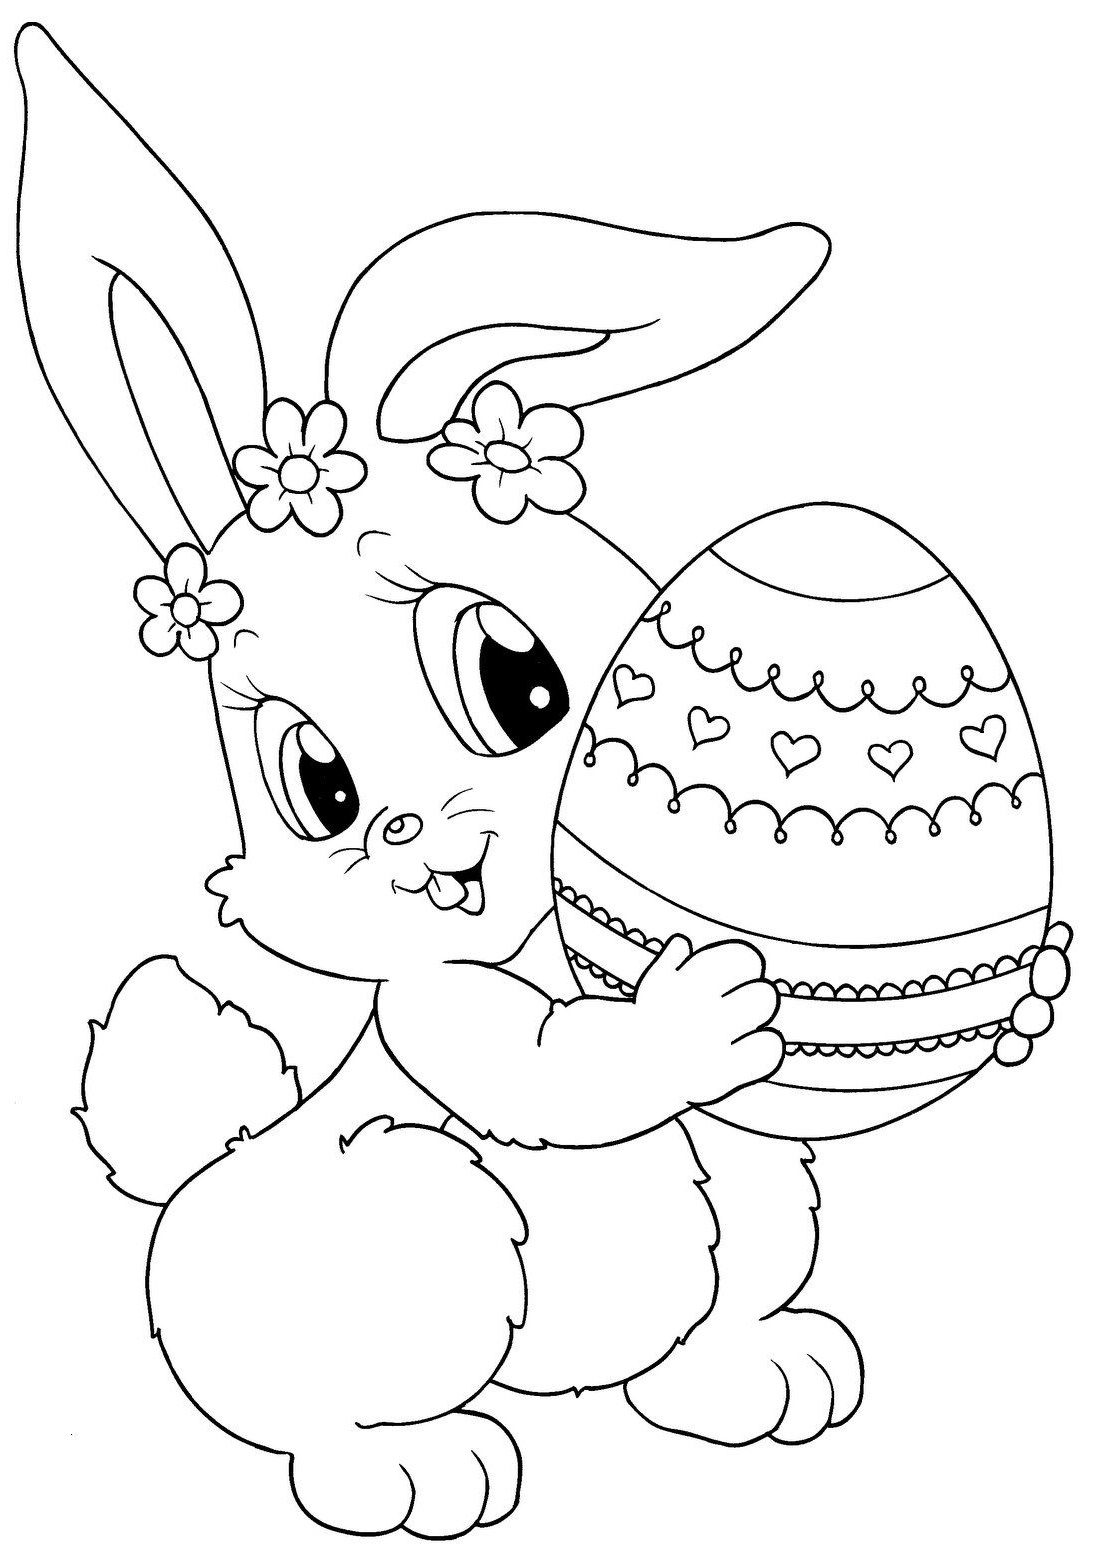 Printable Easter Colorings Free Online Blank Egg Cute | Coloring Pages - Free Printable Easter Coloring Pictures